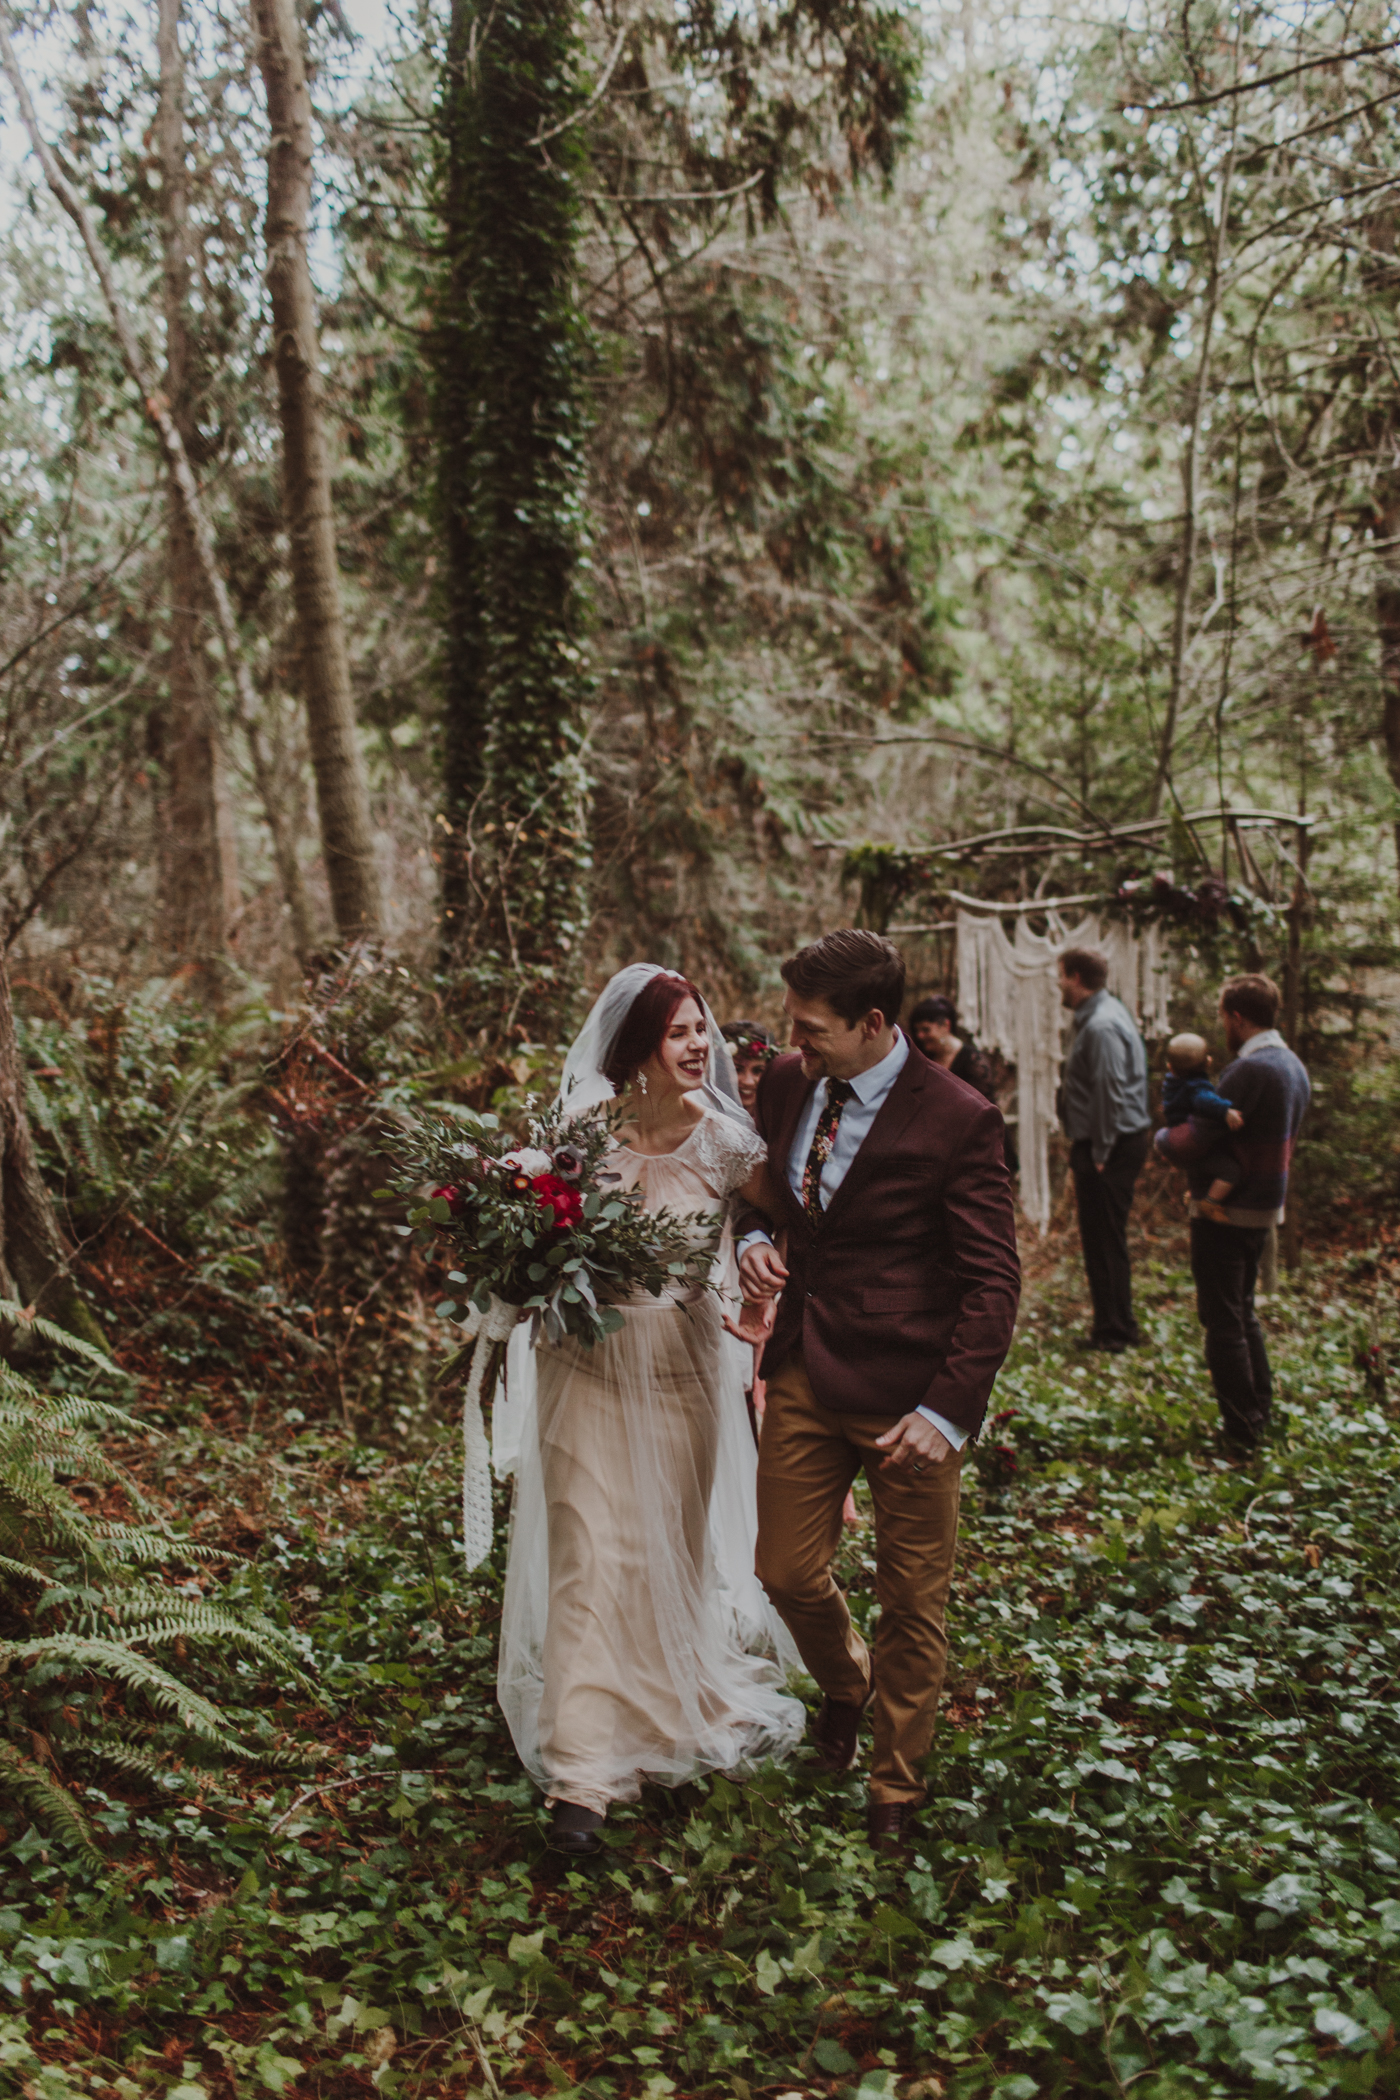 Olympic Peninsula Elopement-LizMorrow-88.jpg